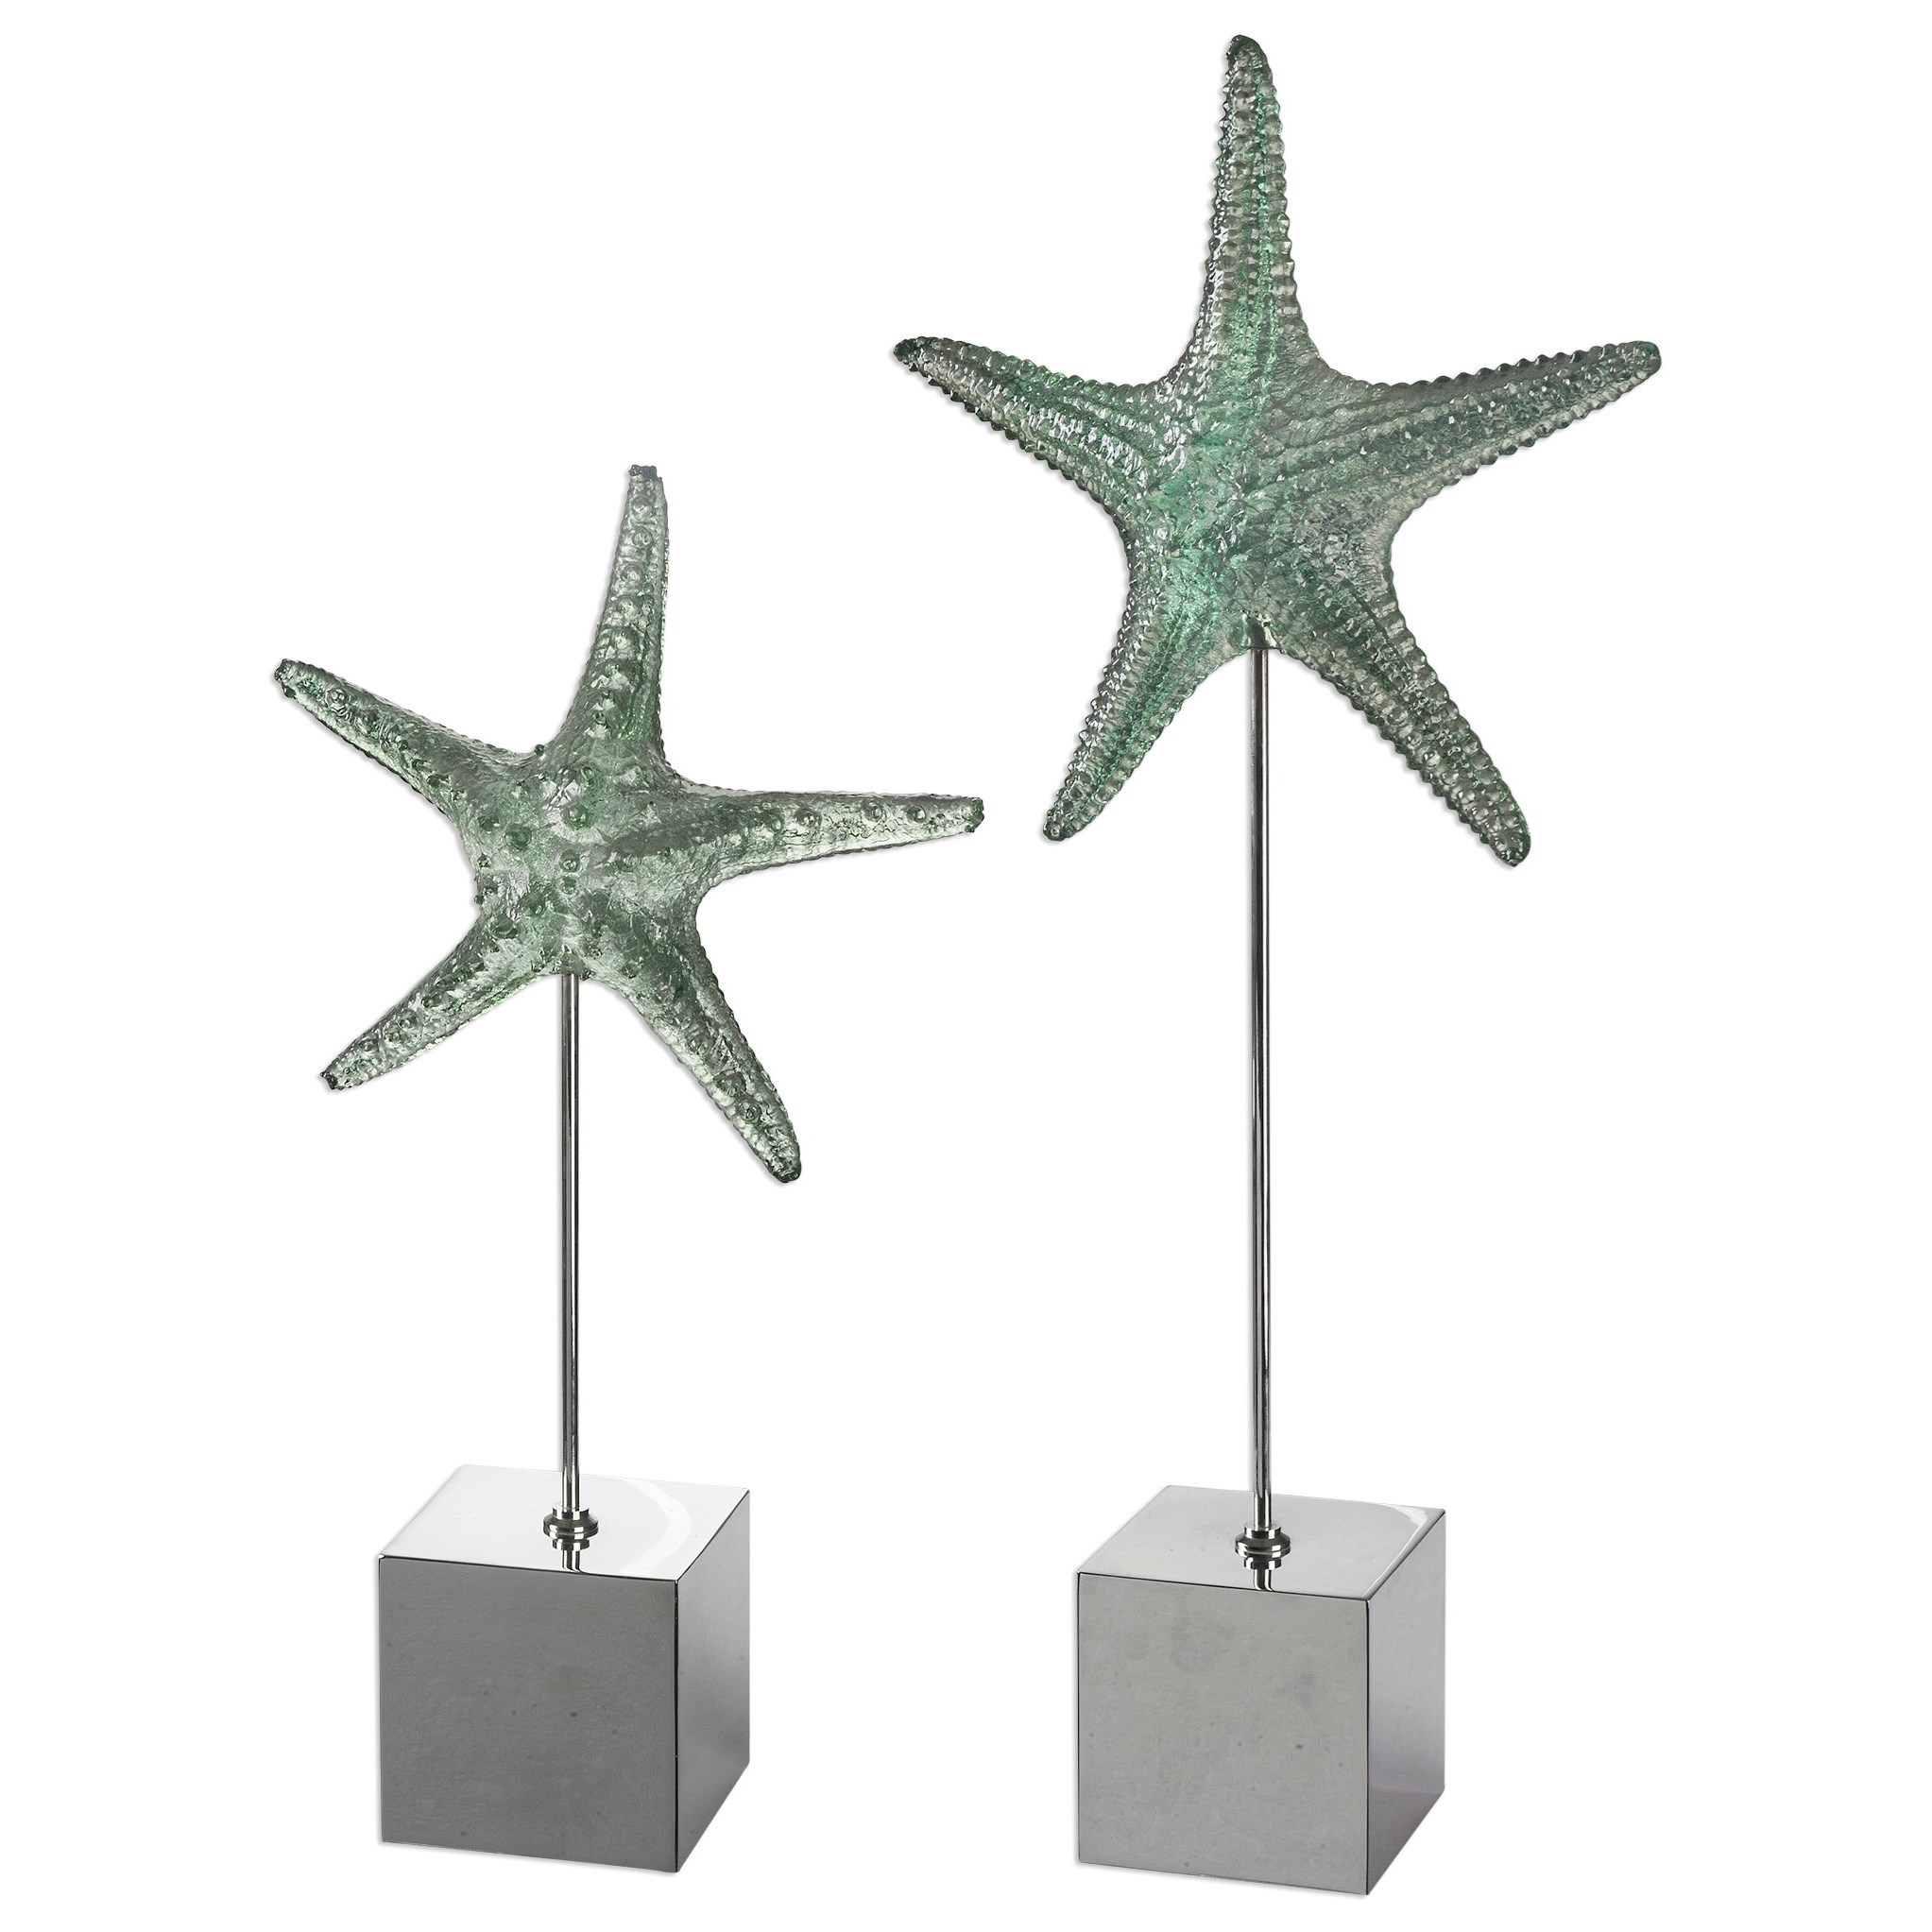 Uttermost Accessories Starfish Sculpture S/2 - Item Number: 20091